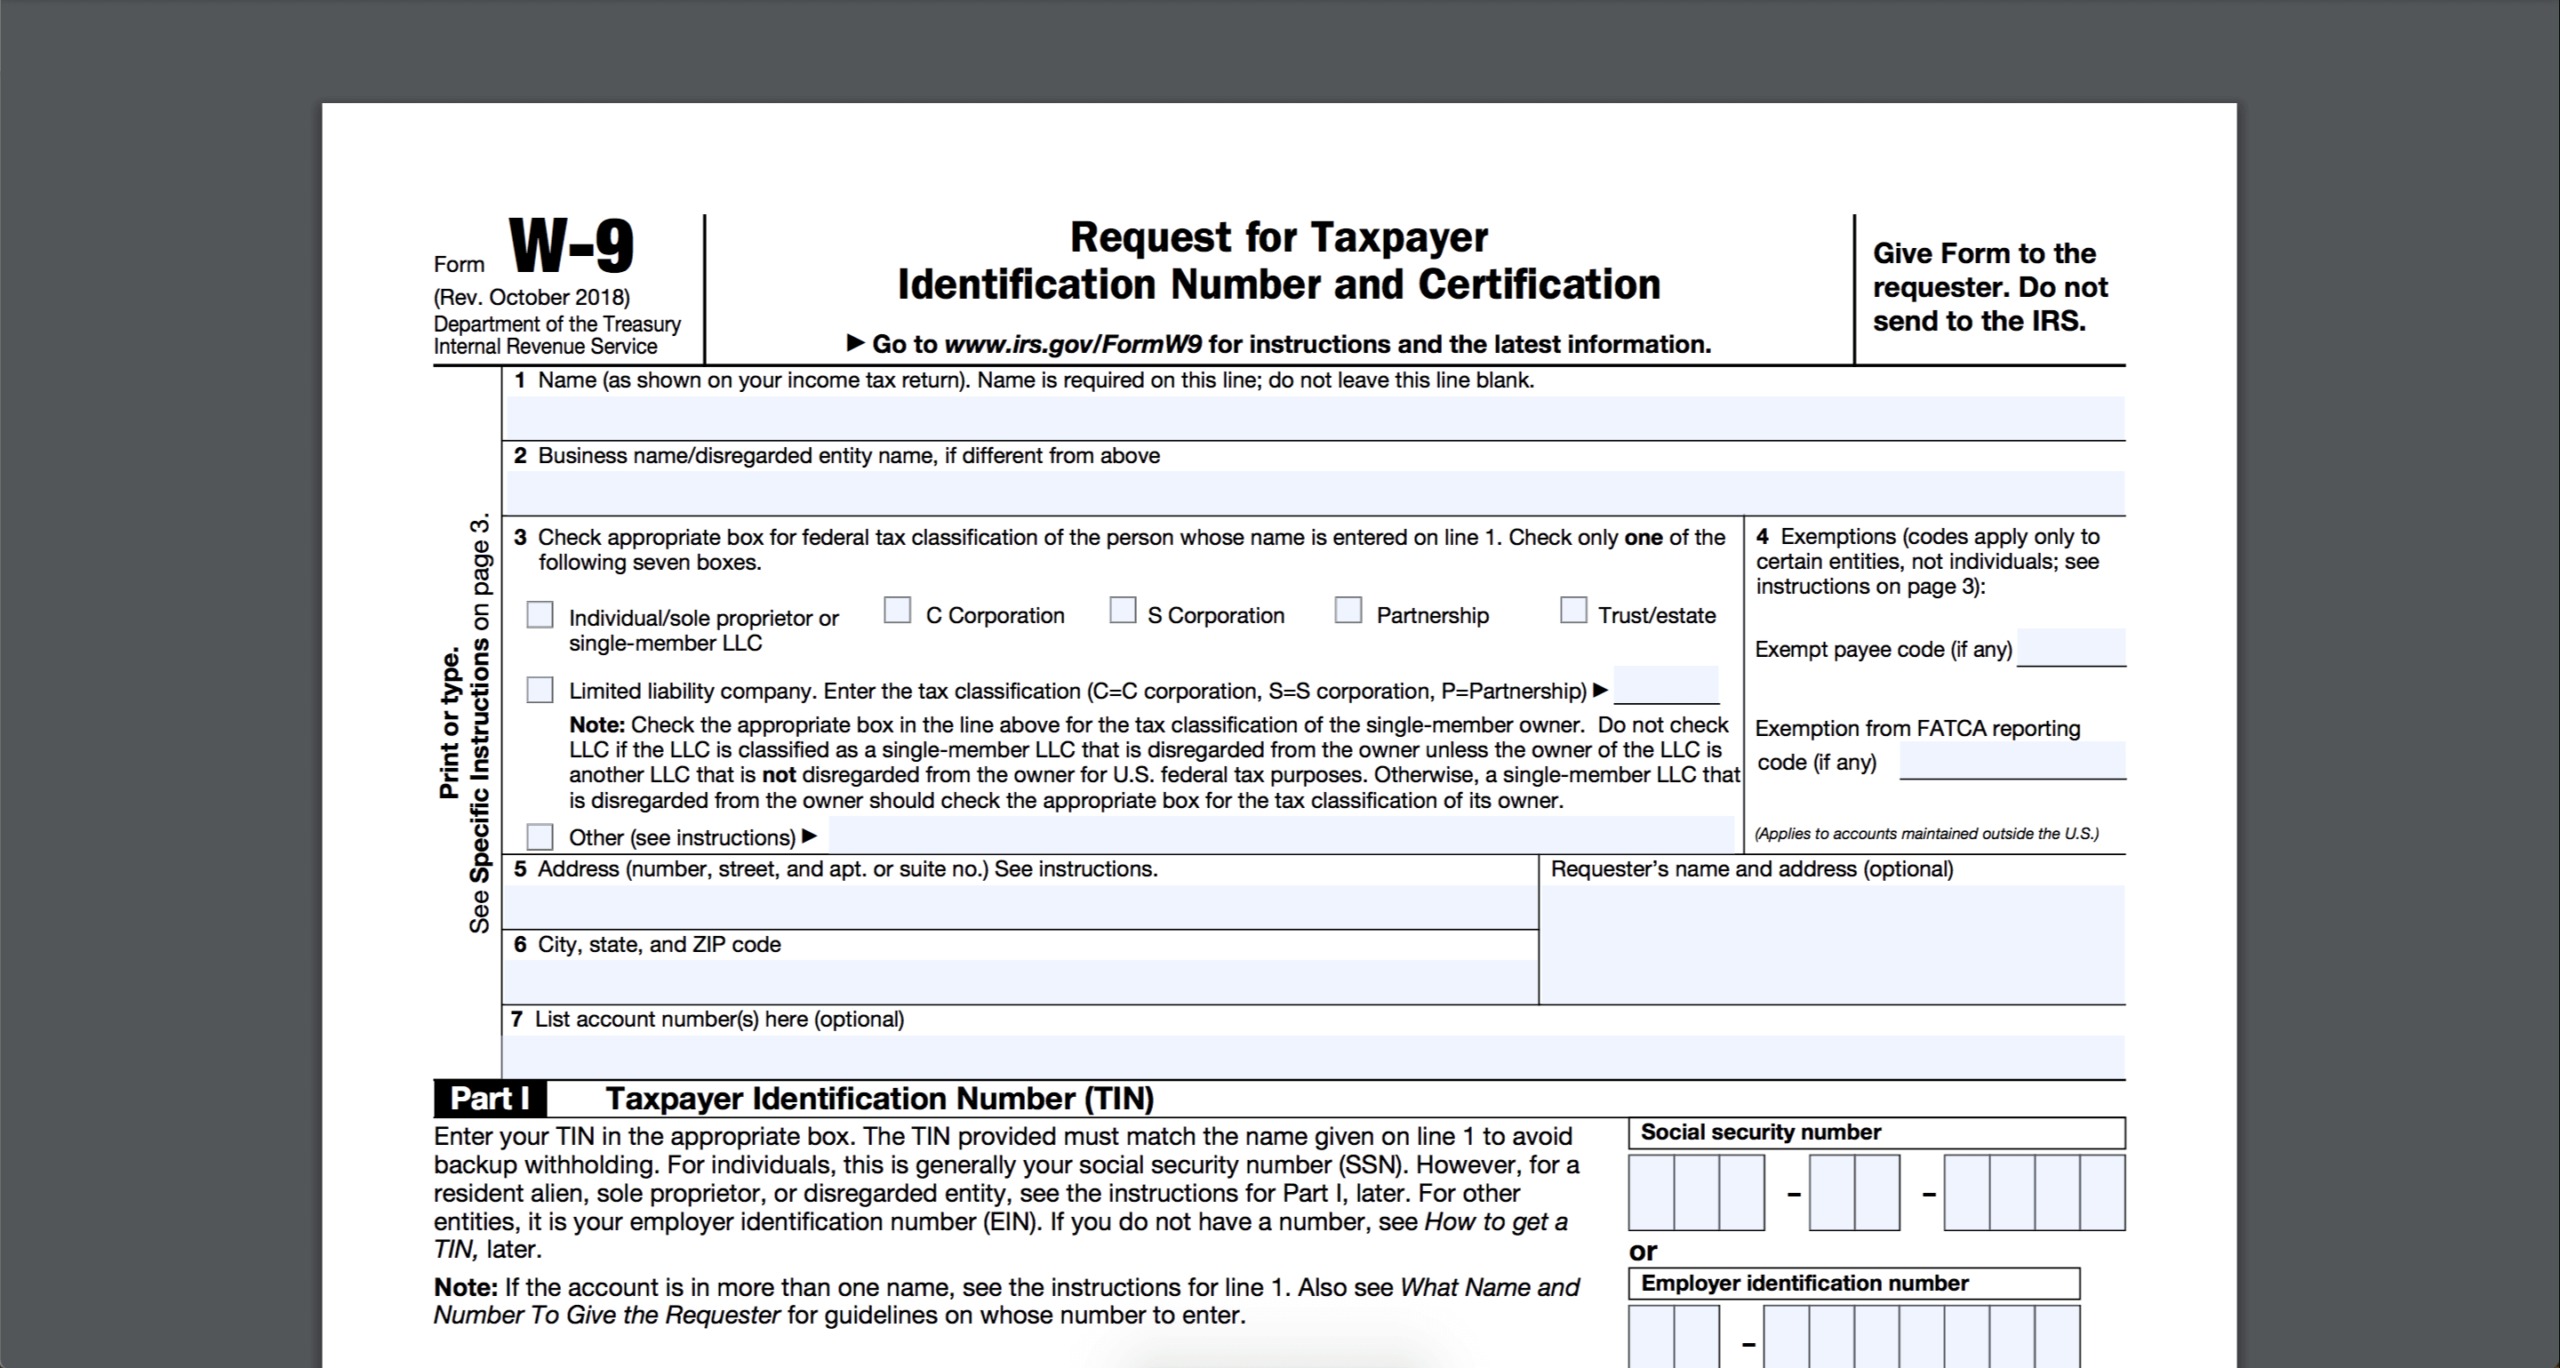 How To Fill Out And Sign Your W-9 Form Online inside Printable W-9 Irs Form